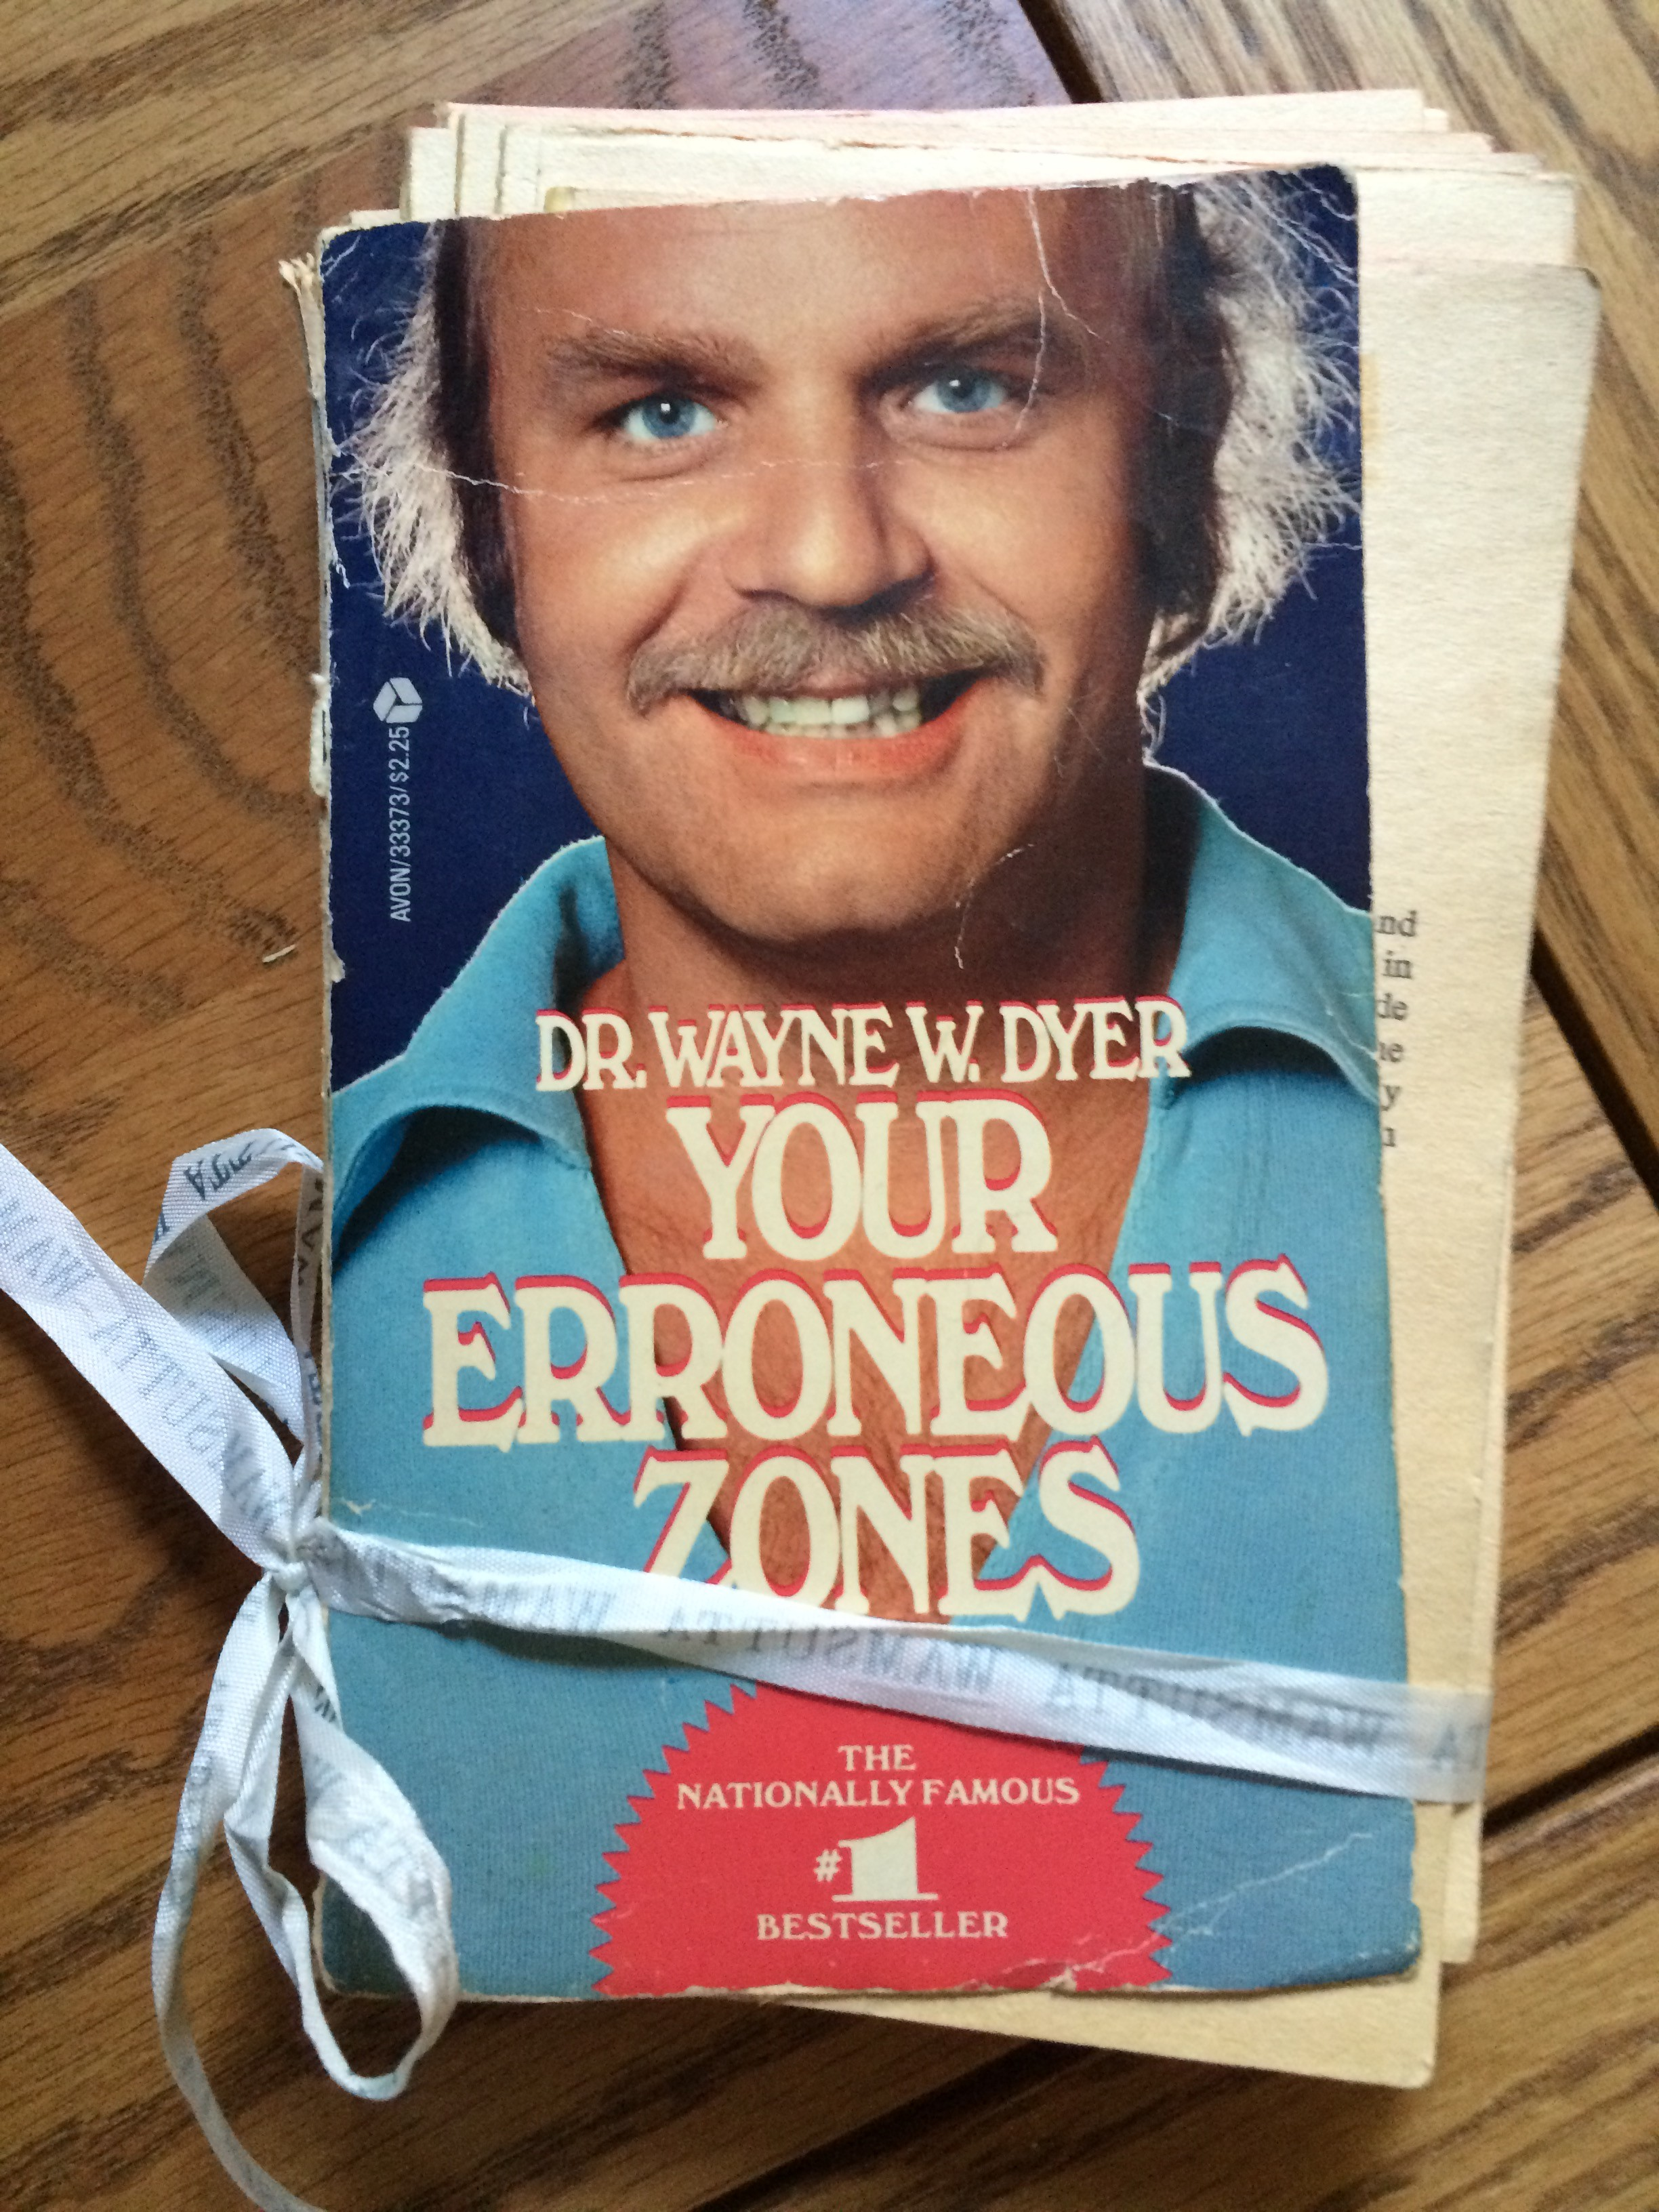 Wayne Dyer's Erroneous Zones